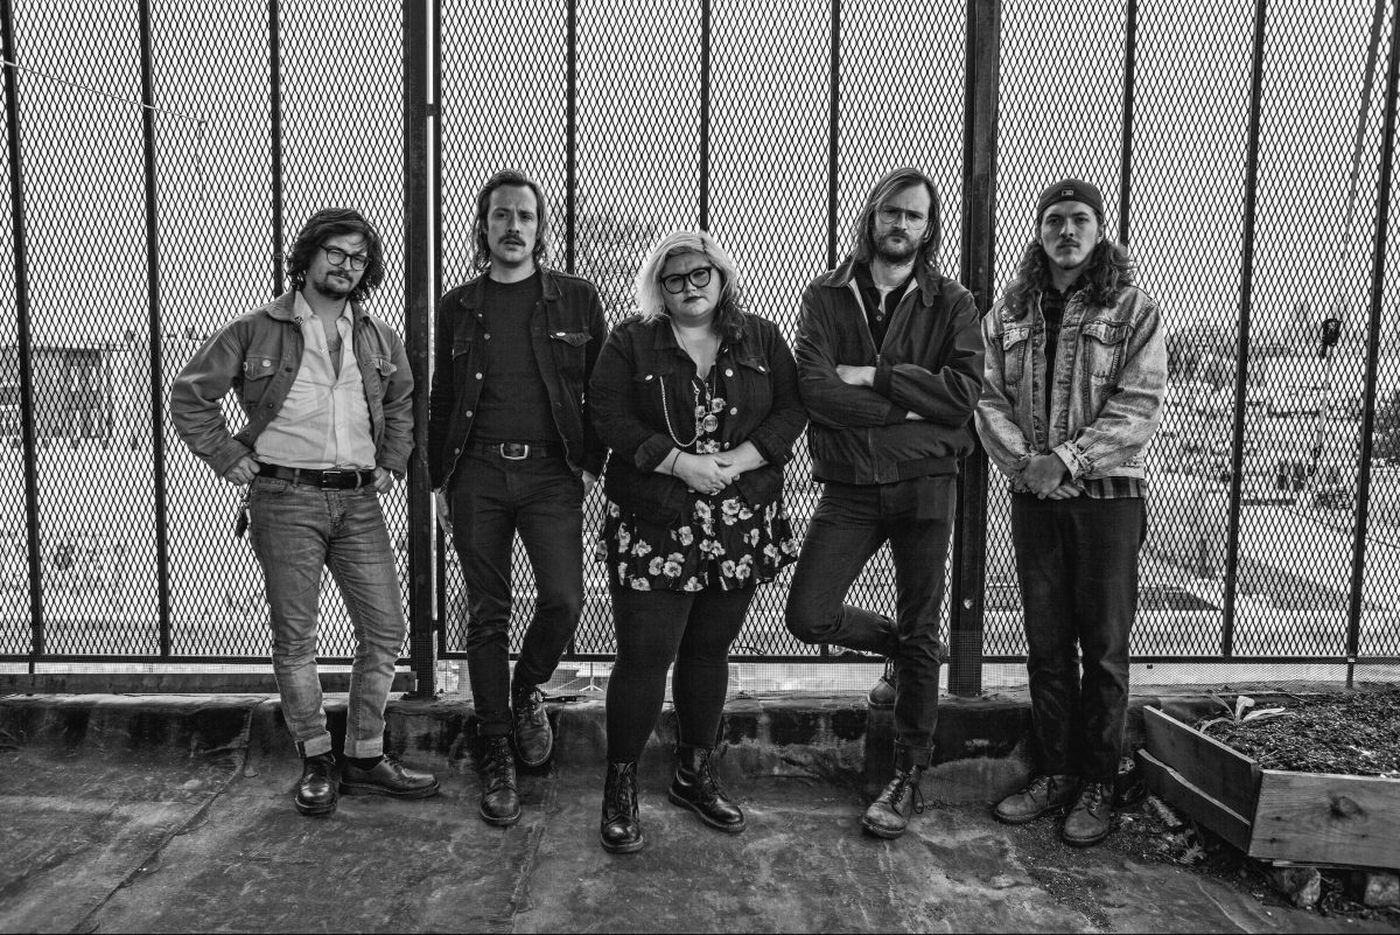 Mysterious South Philly punks Sheer Mag are ready to step into the spotlight